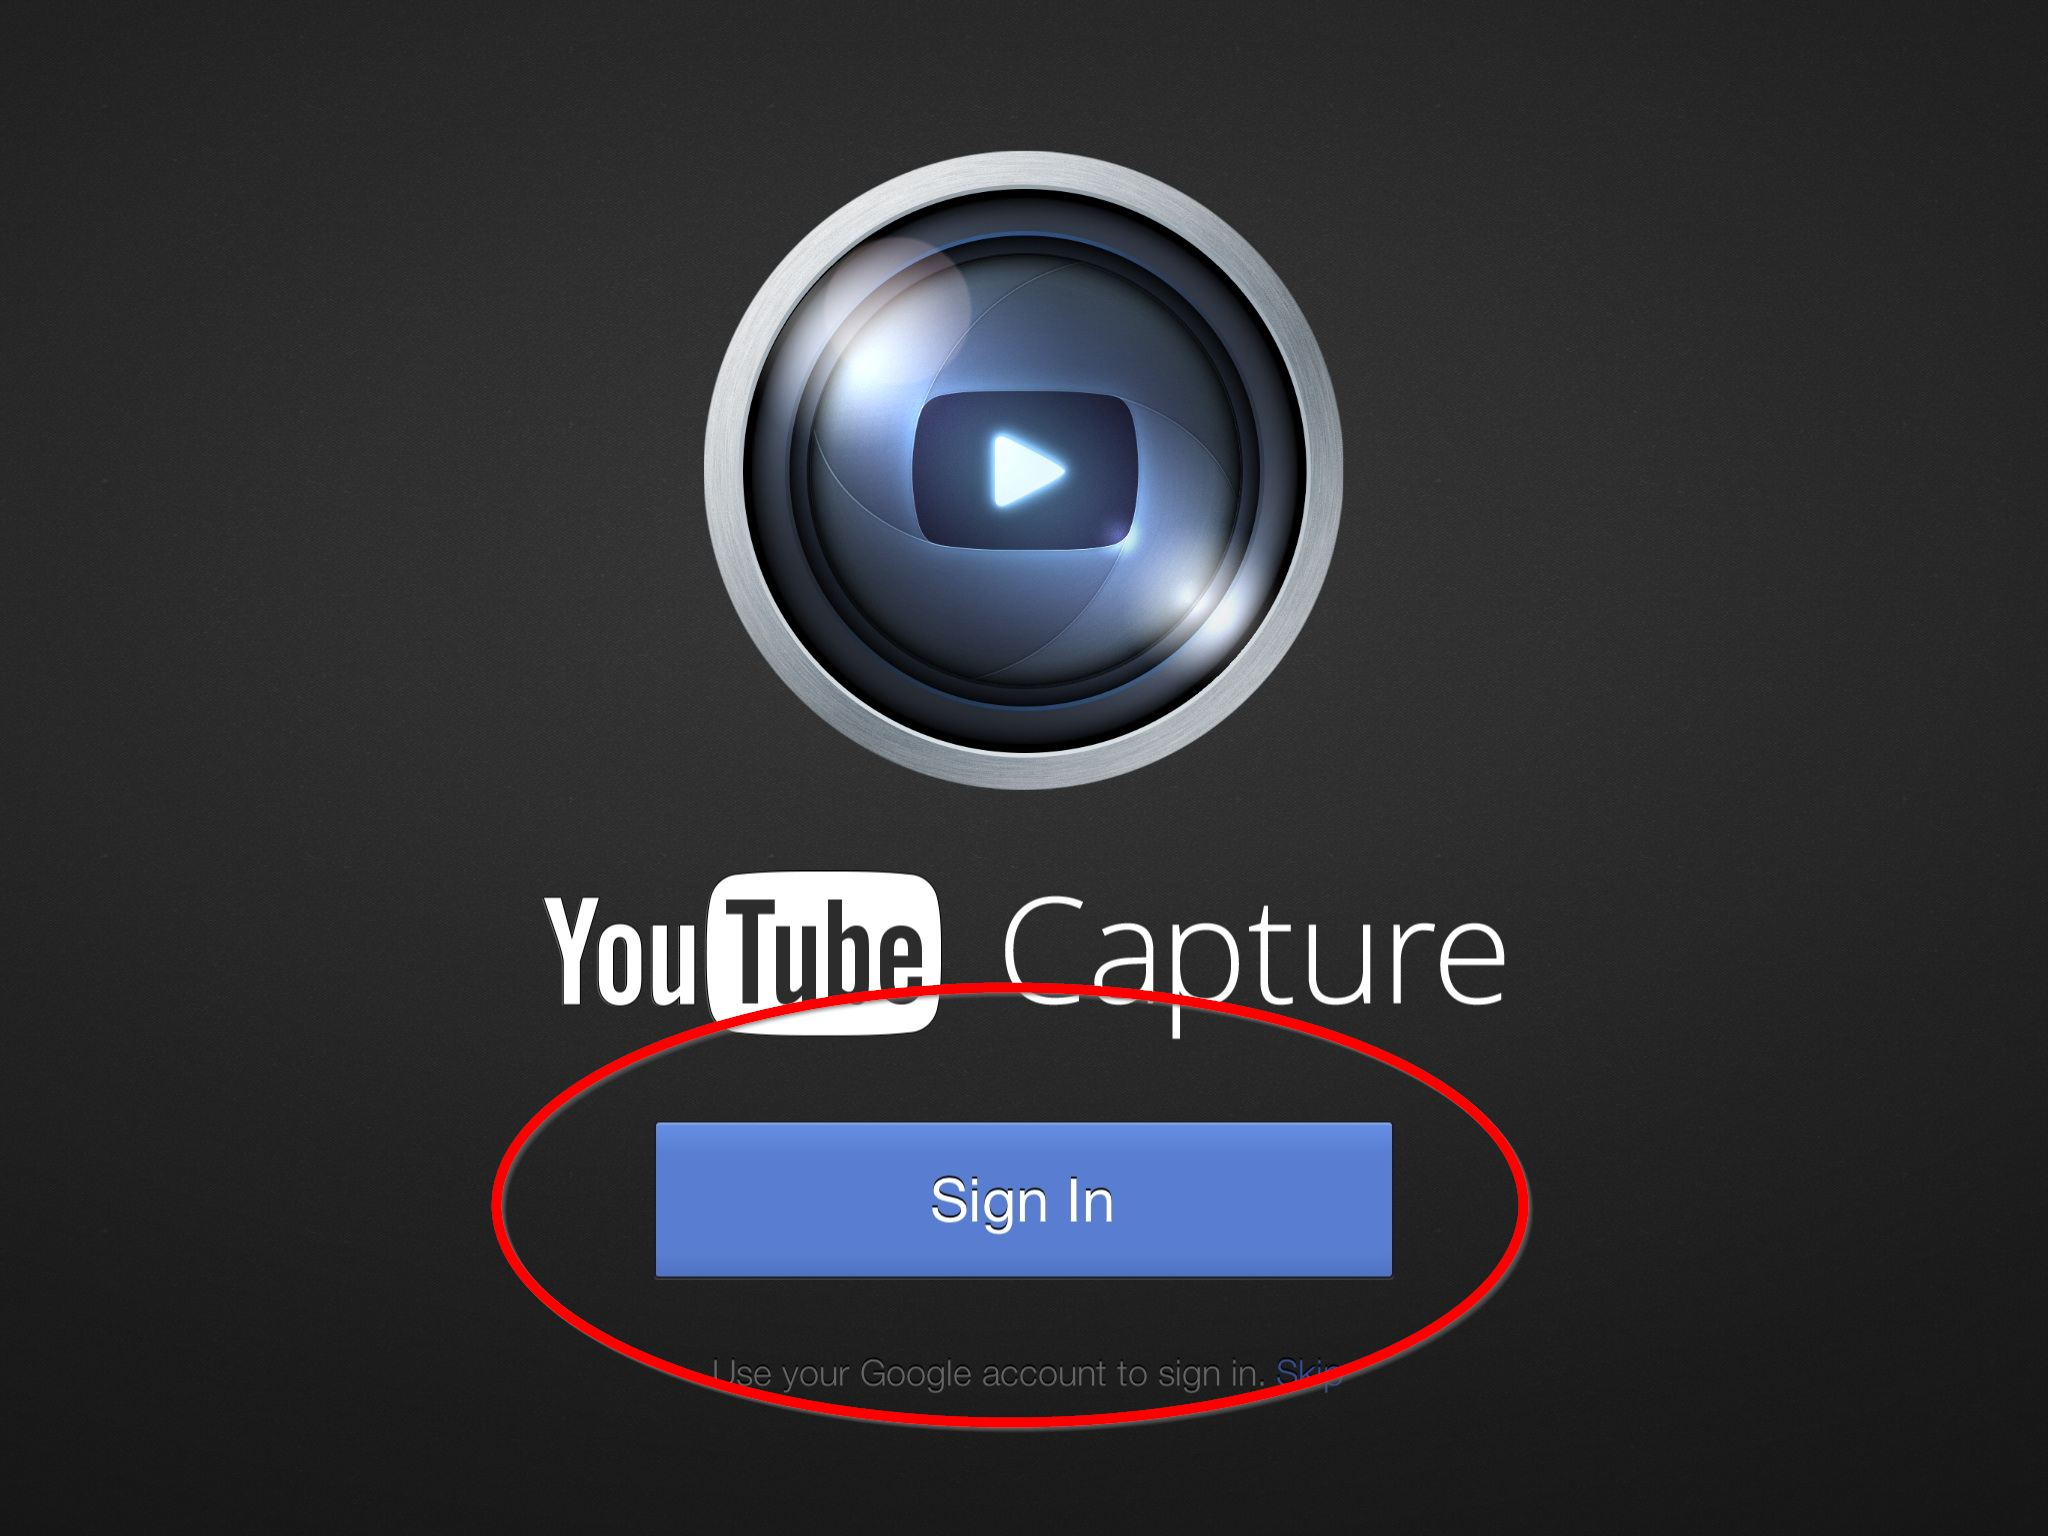 Tap sign in to begin the process. You must be signed in before you can upload videos to YouTube.